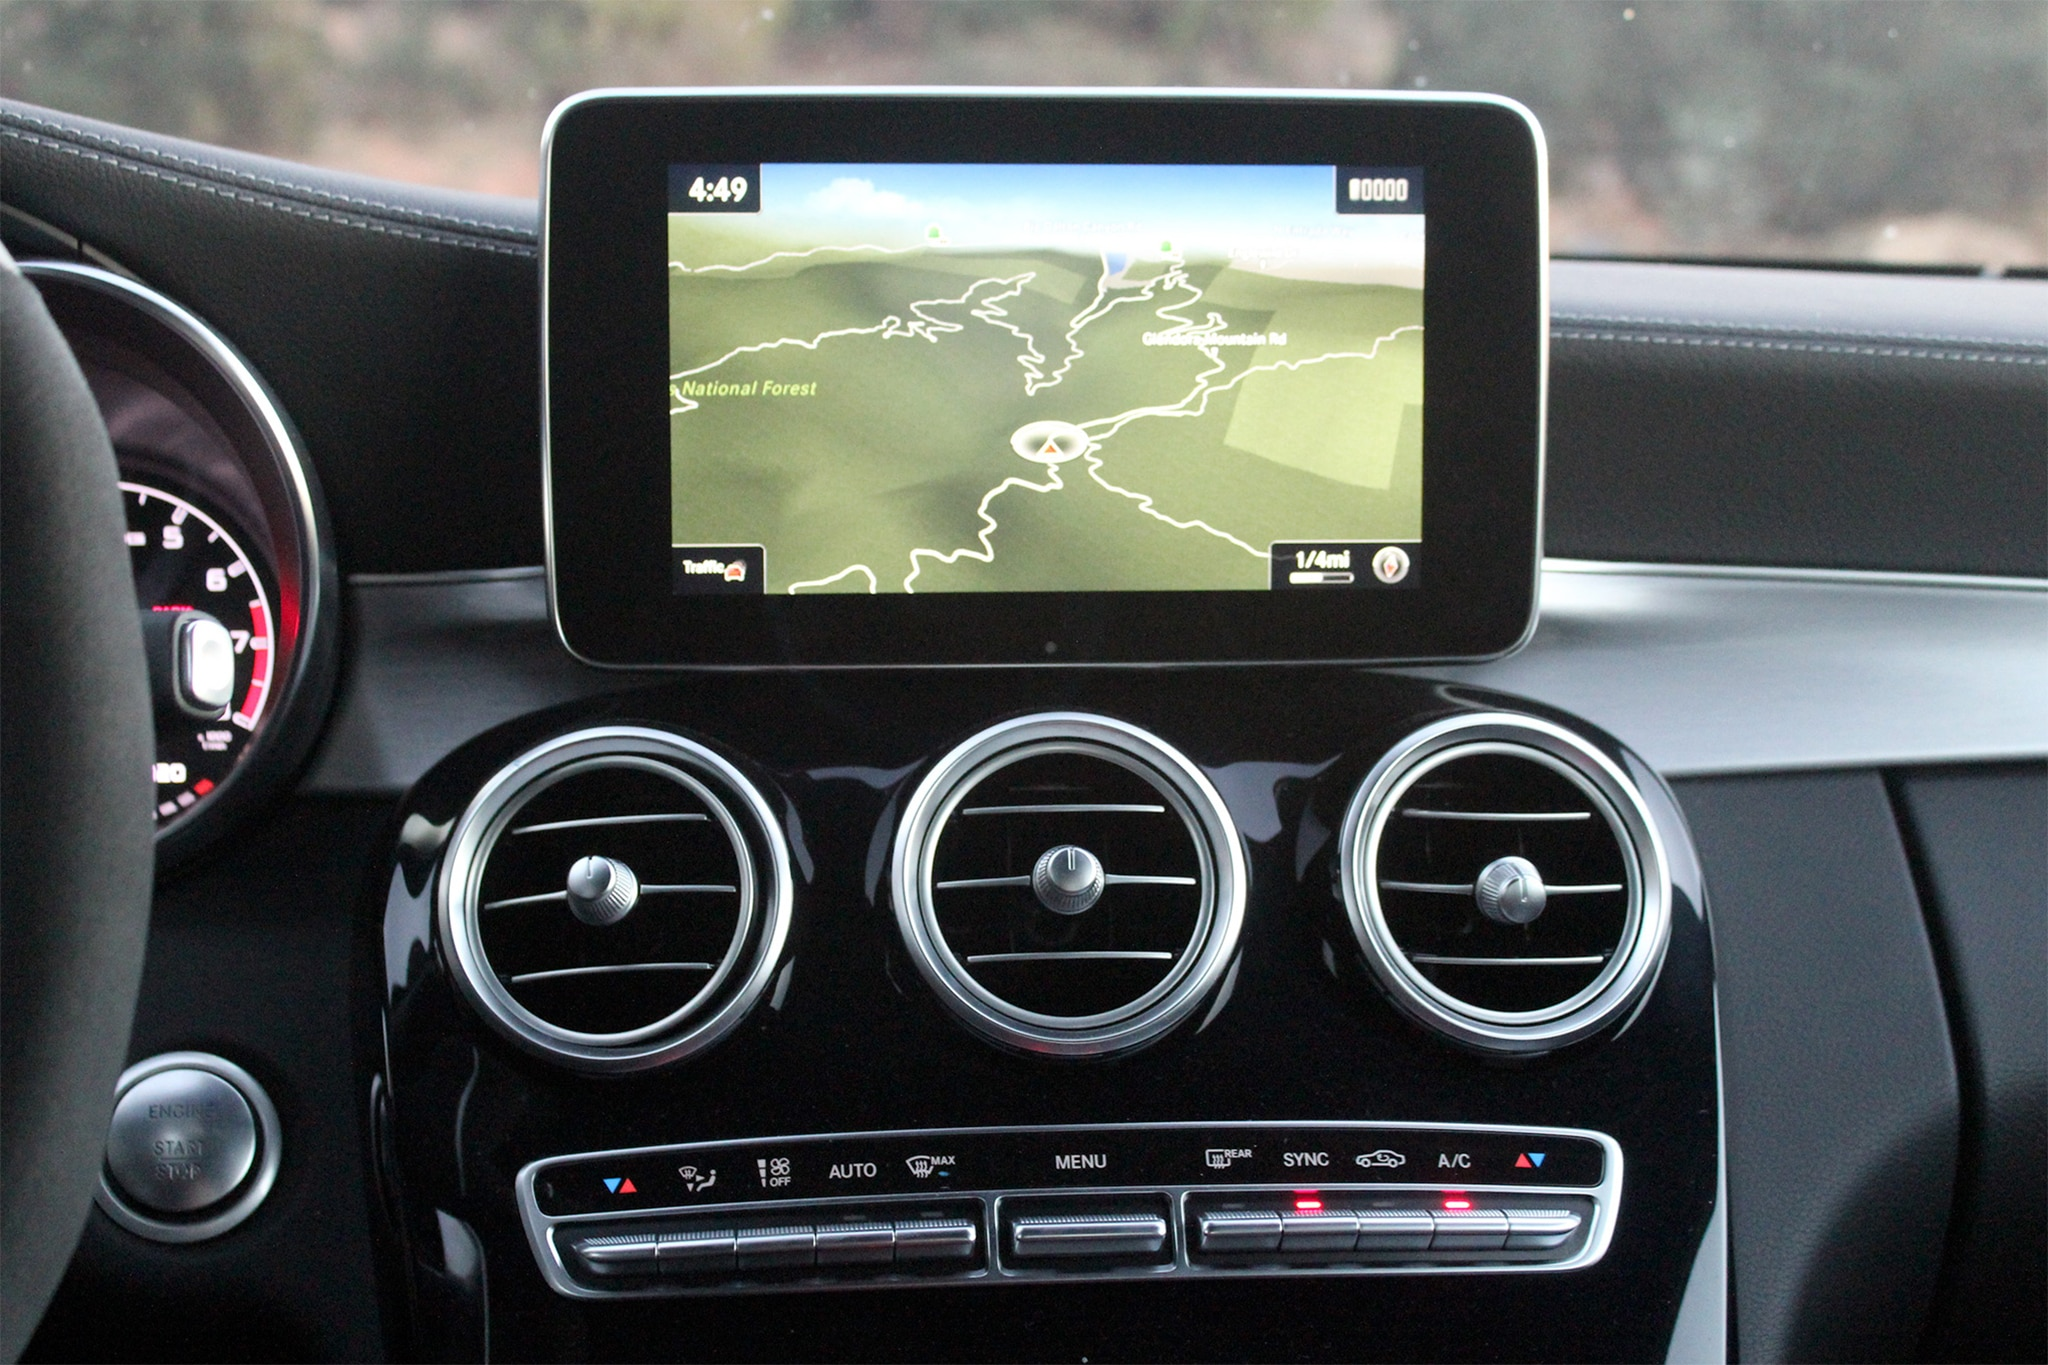 2017 Mercedes AMG C43 Coupe Infotainment